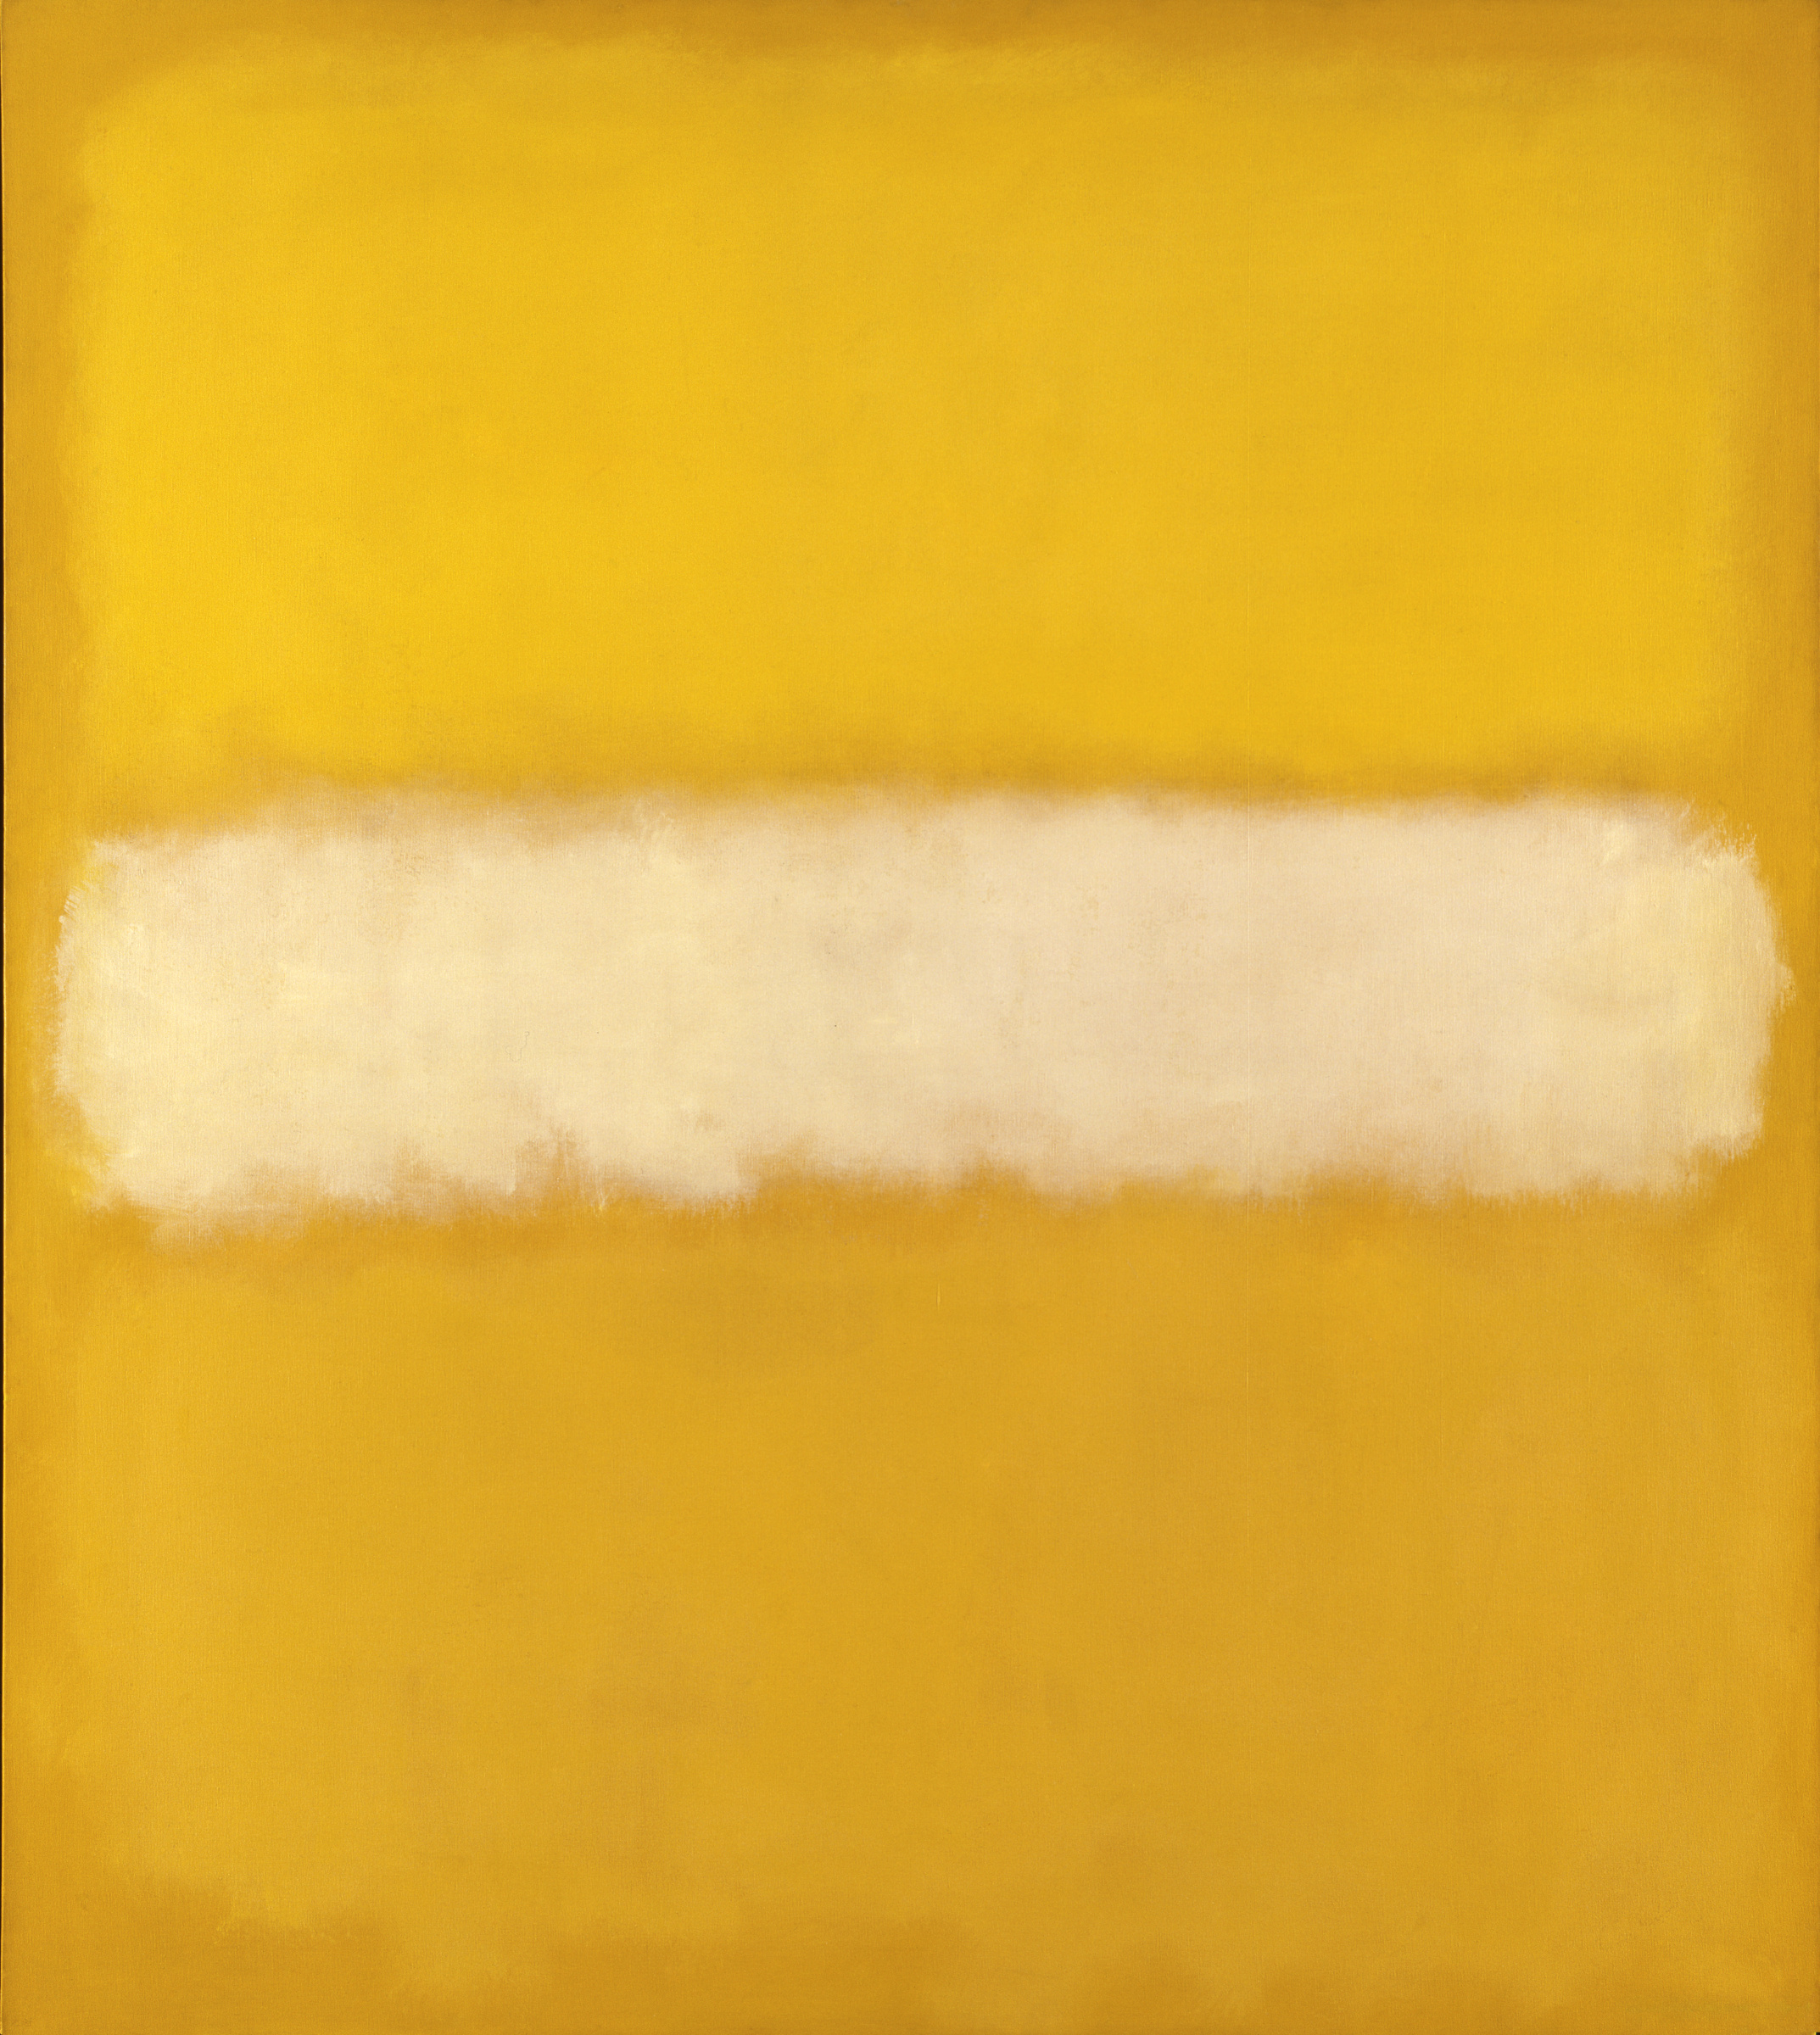 artist Mark Rothko, No. 10, 1957, oil on canvas, The Menil Collection, Houston. © 1998 by Kate Rothko Prizel and Christopher Rothko courtesy Museum of Fine Arts Houston